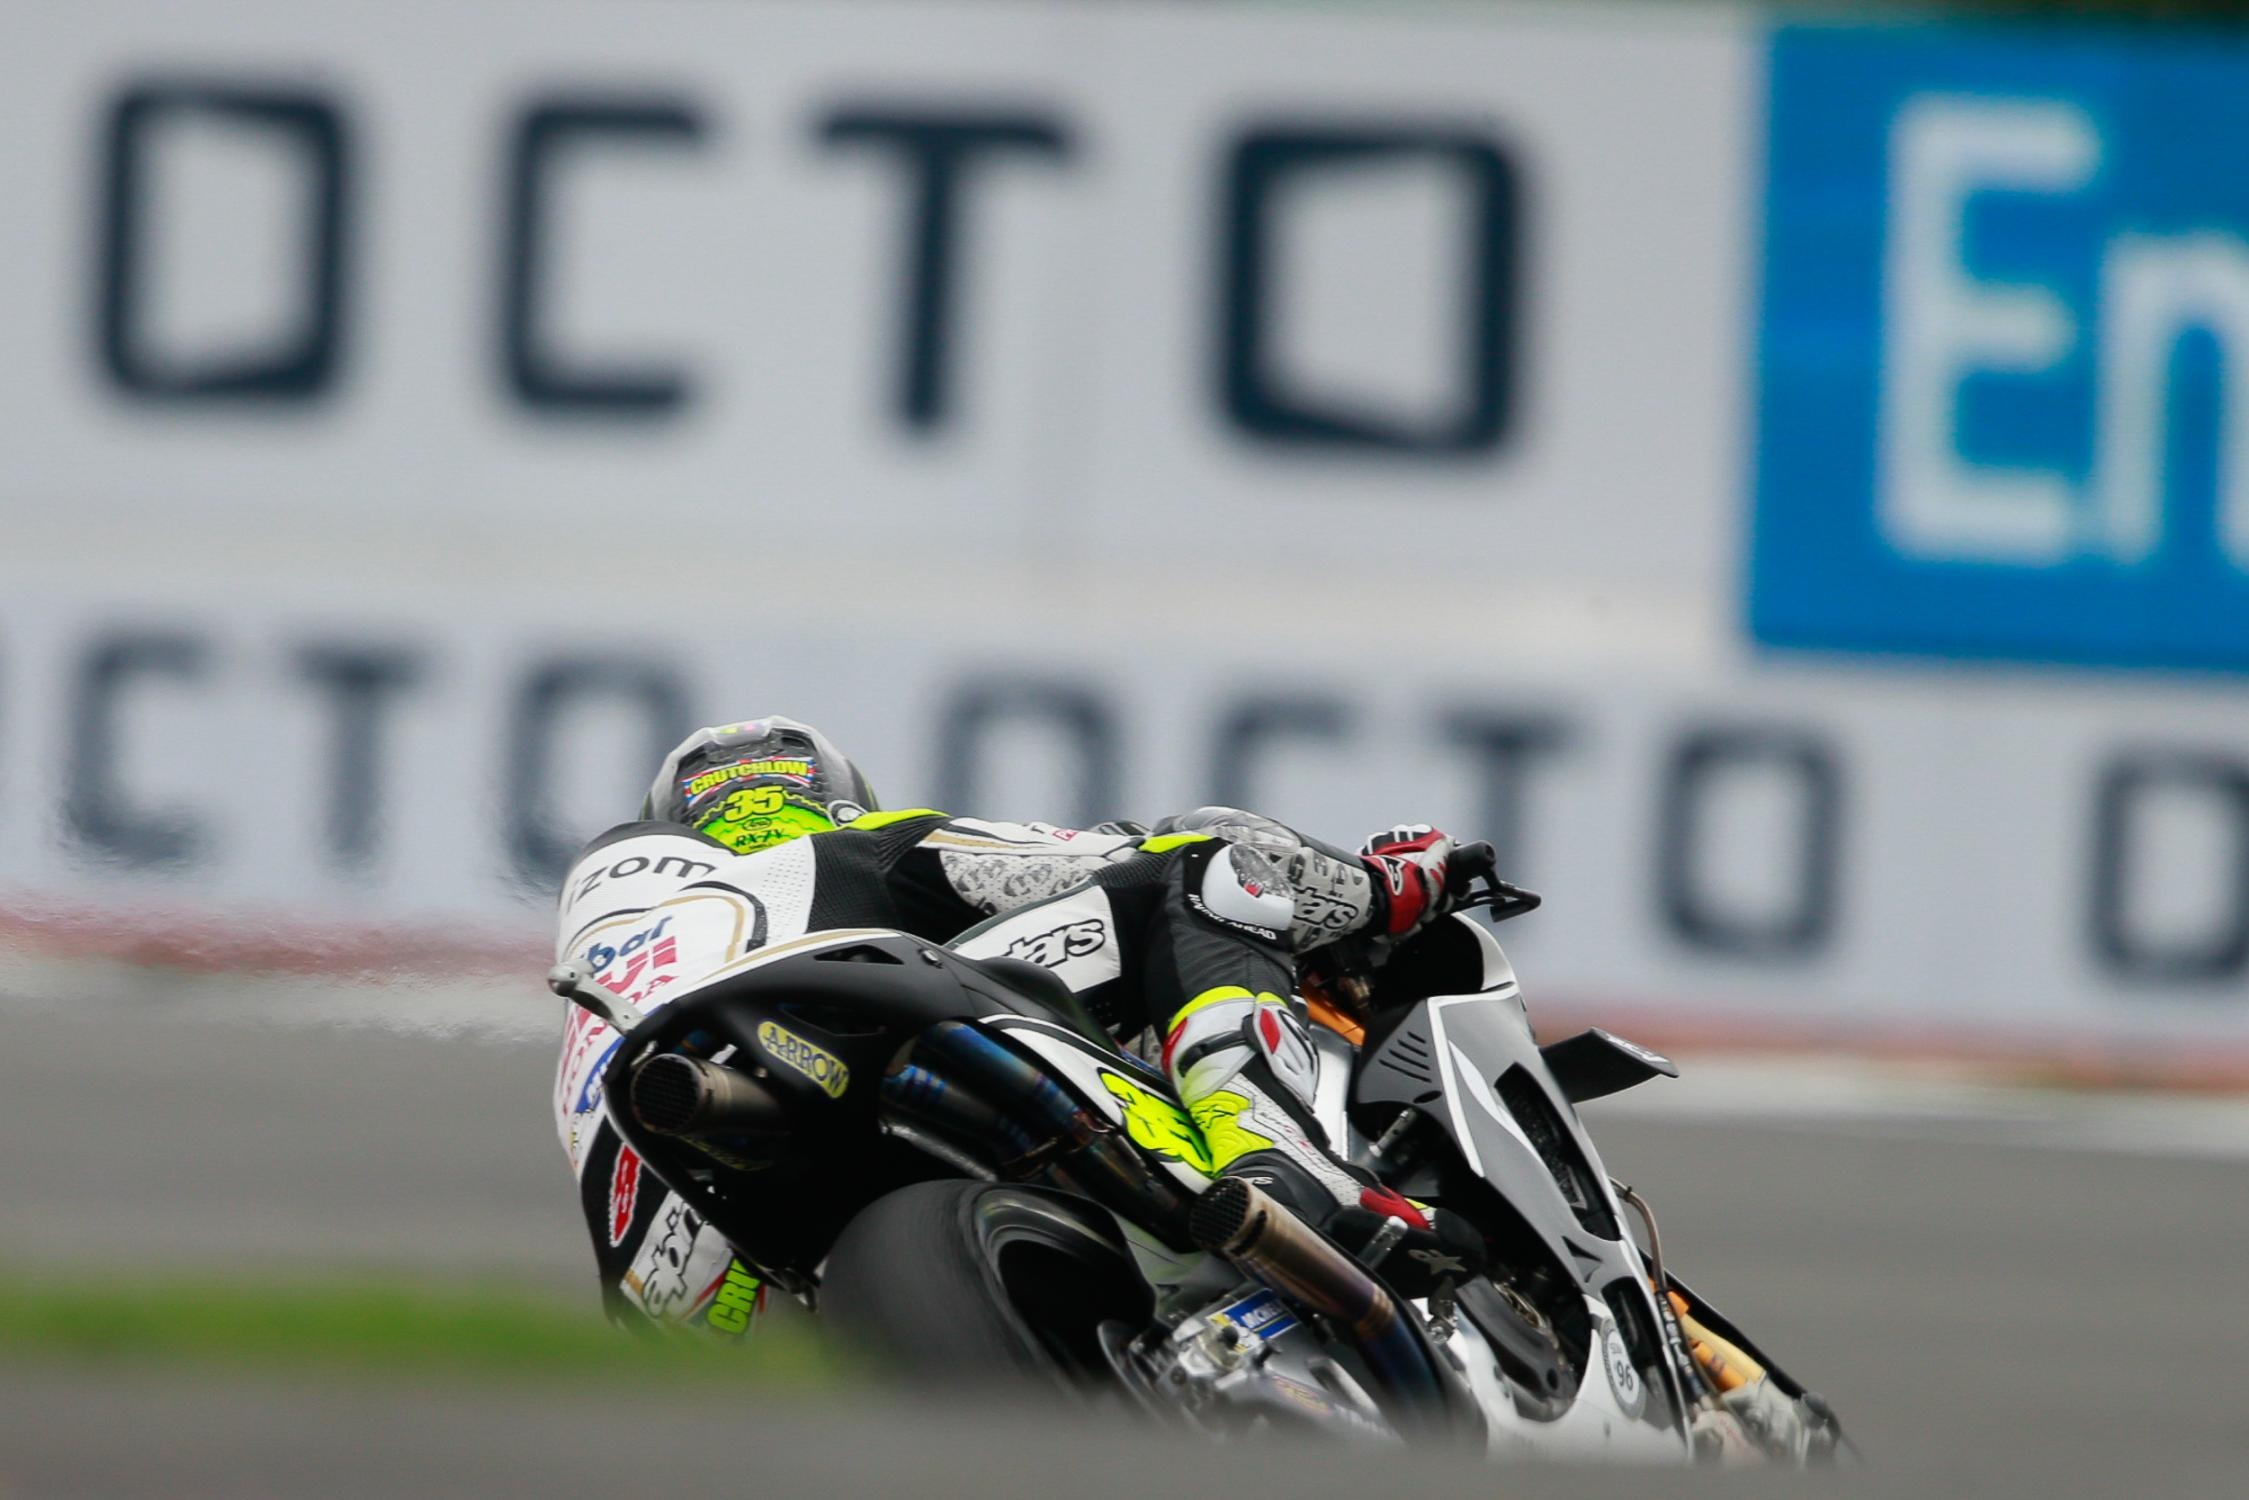 CRUTCHLOW THE HERO